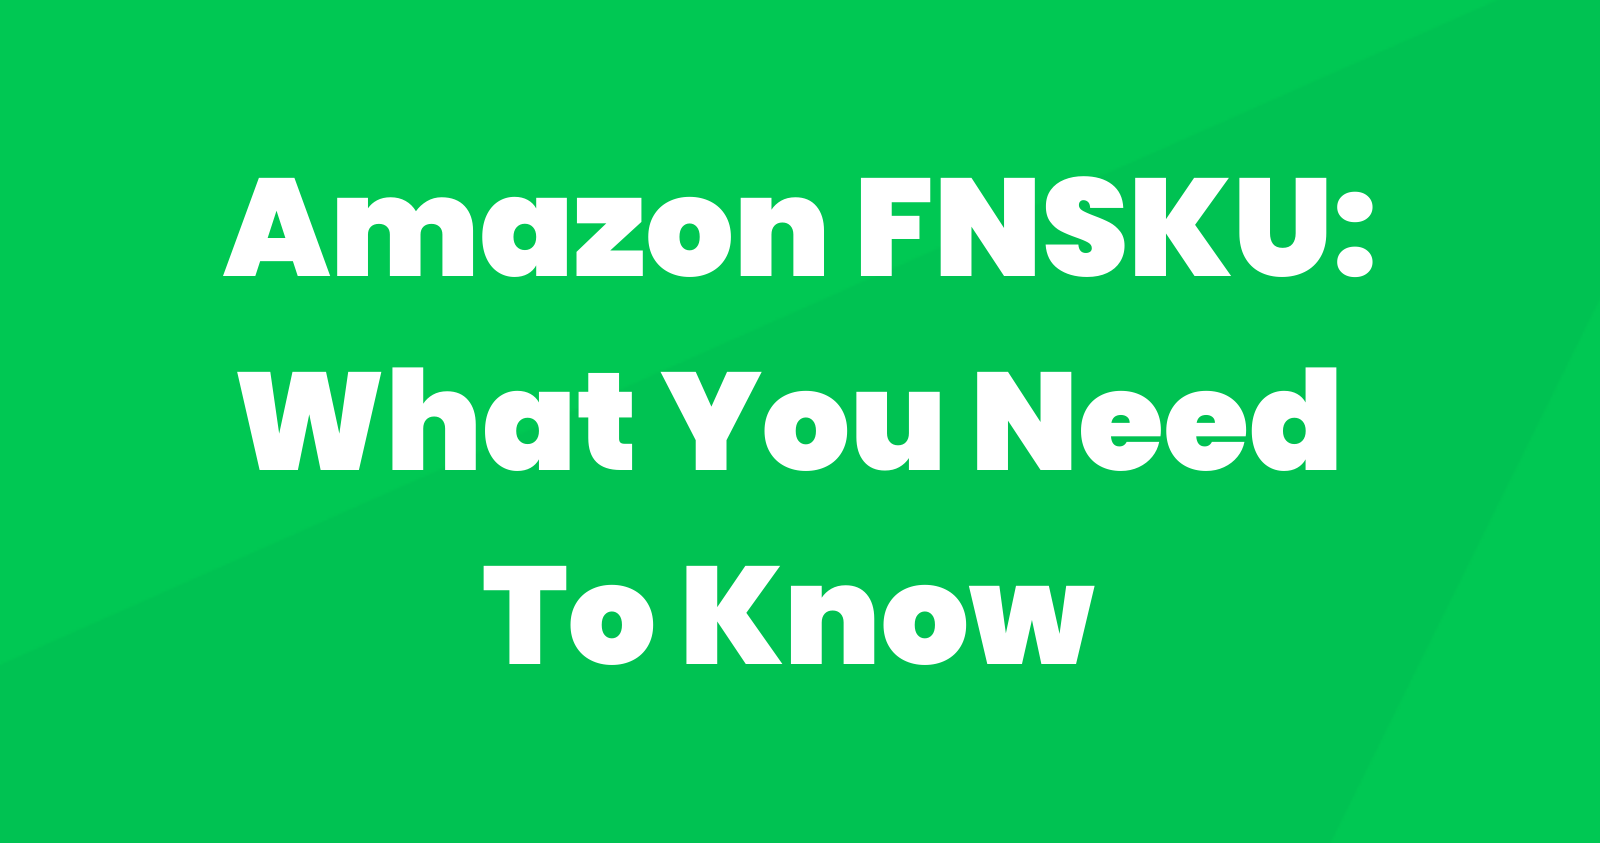 Amazon FNSKU: What You Need to Know